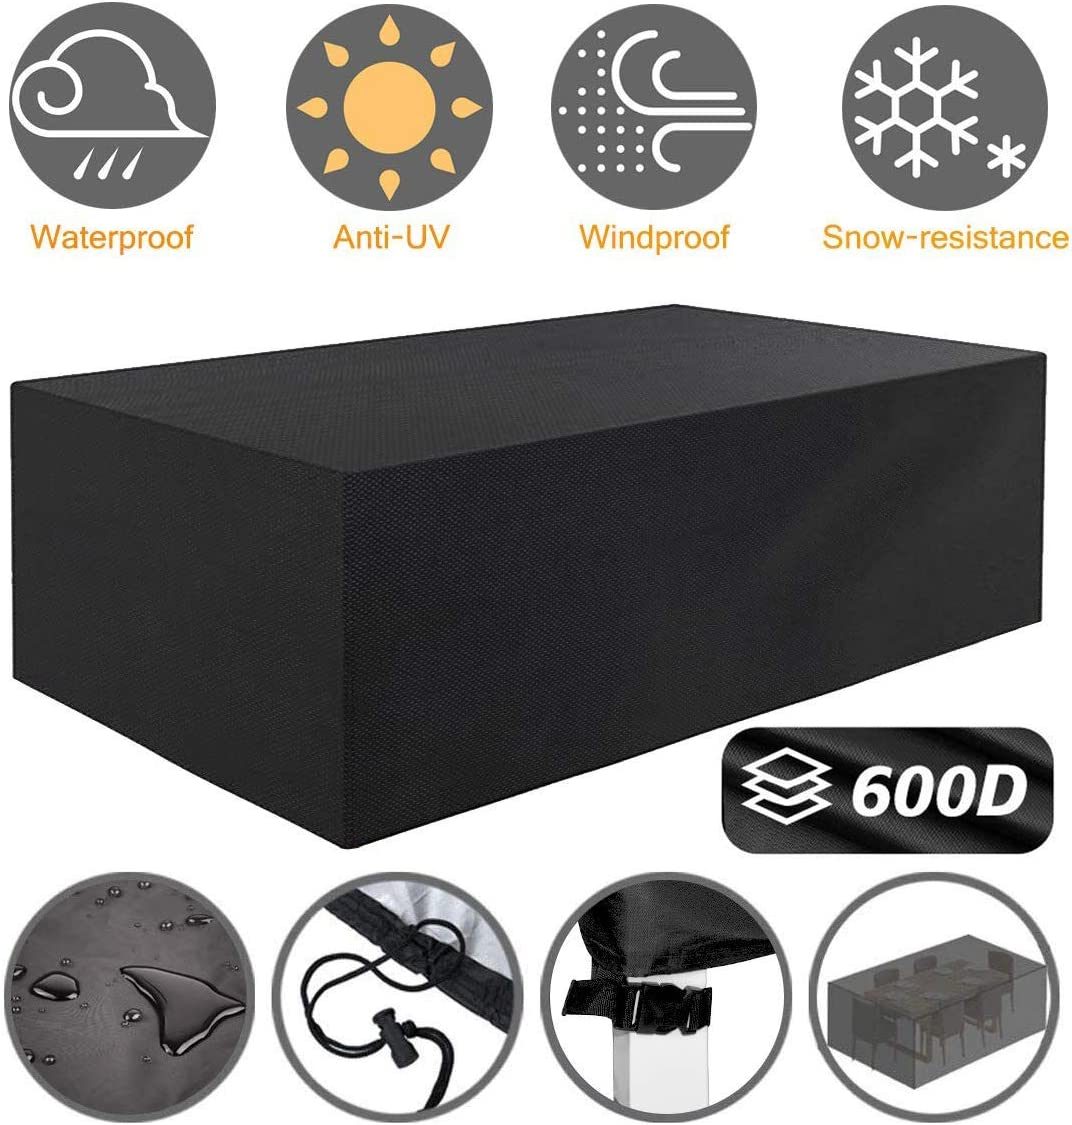 Tvird Patio Furniture Covers,96 x 64 x 40 Outdoor Furniture Covers Made of 600D Heavy Duty Oxford Fabric,Windproof Waterproof, Rain Snow Dust Wind-Proof, Anti-UV, Fits for 8 to 10 Seats Black